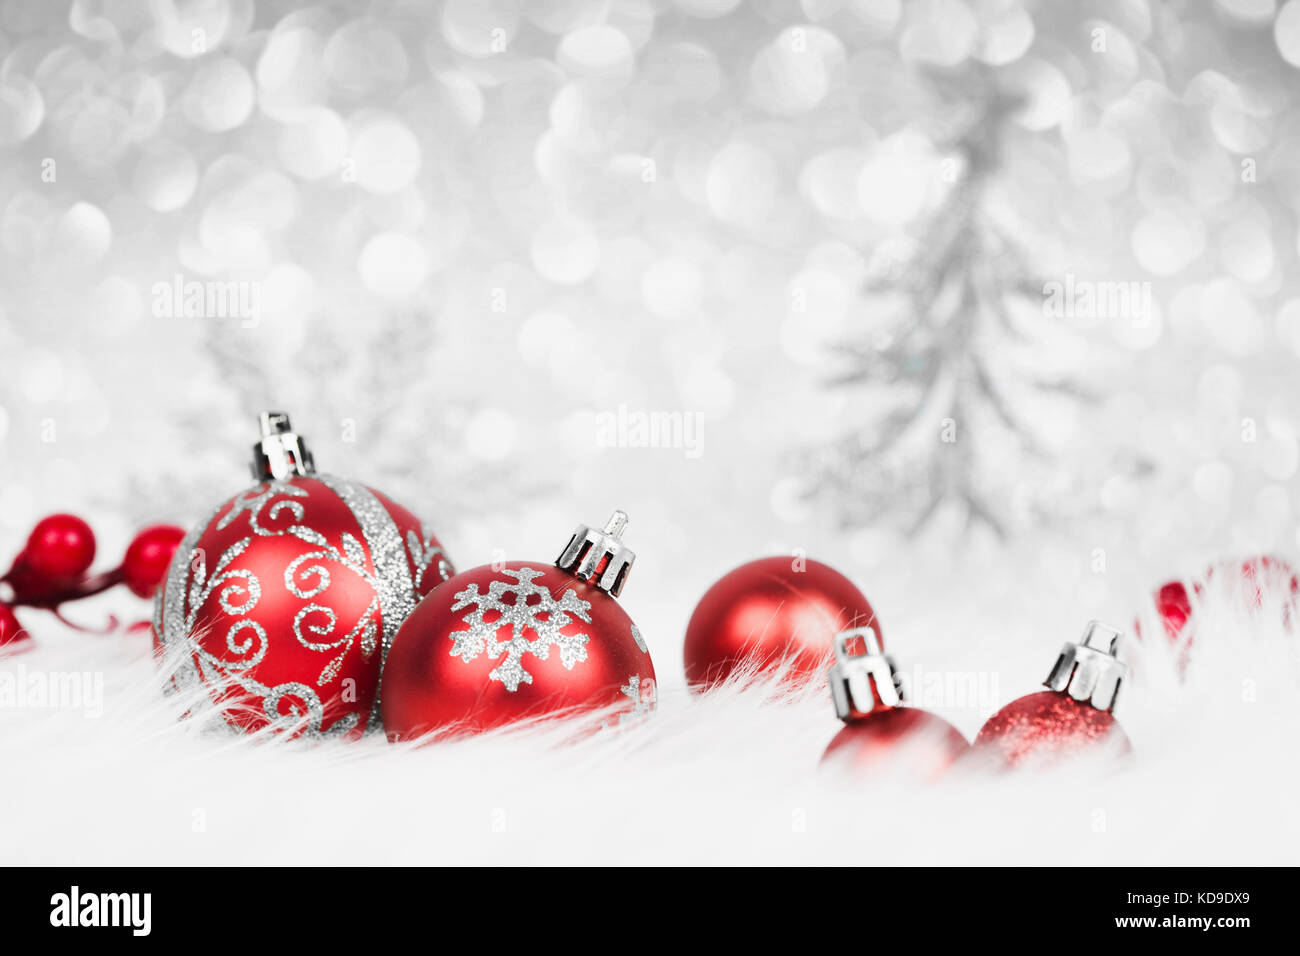 Christmas Red Balls With Silver Decoration On The Snow Xmas Card